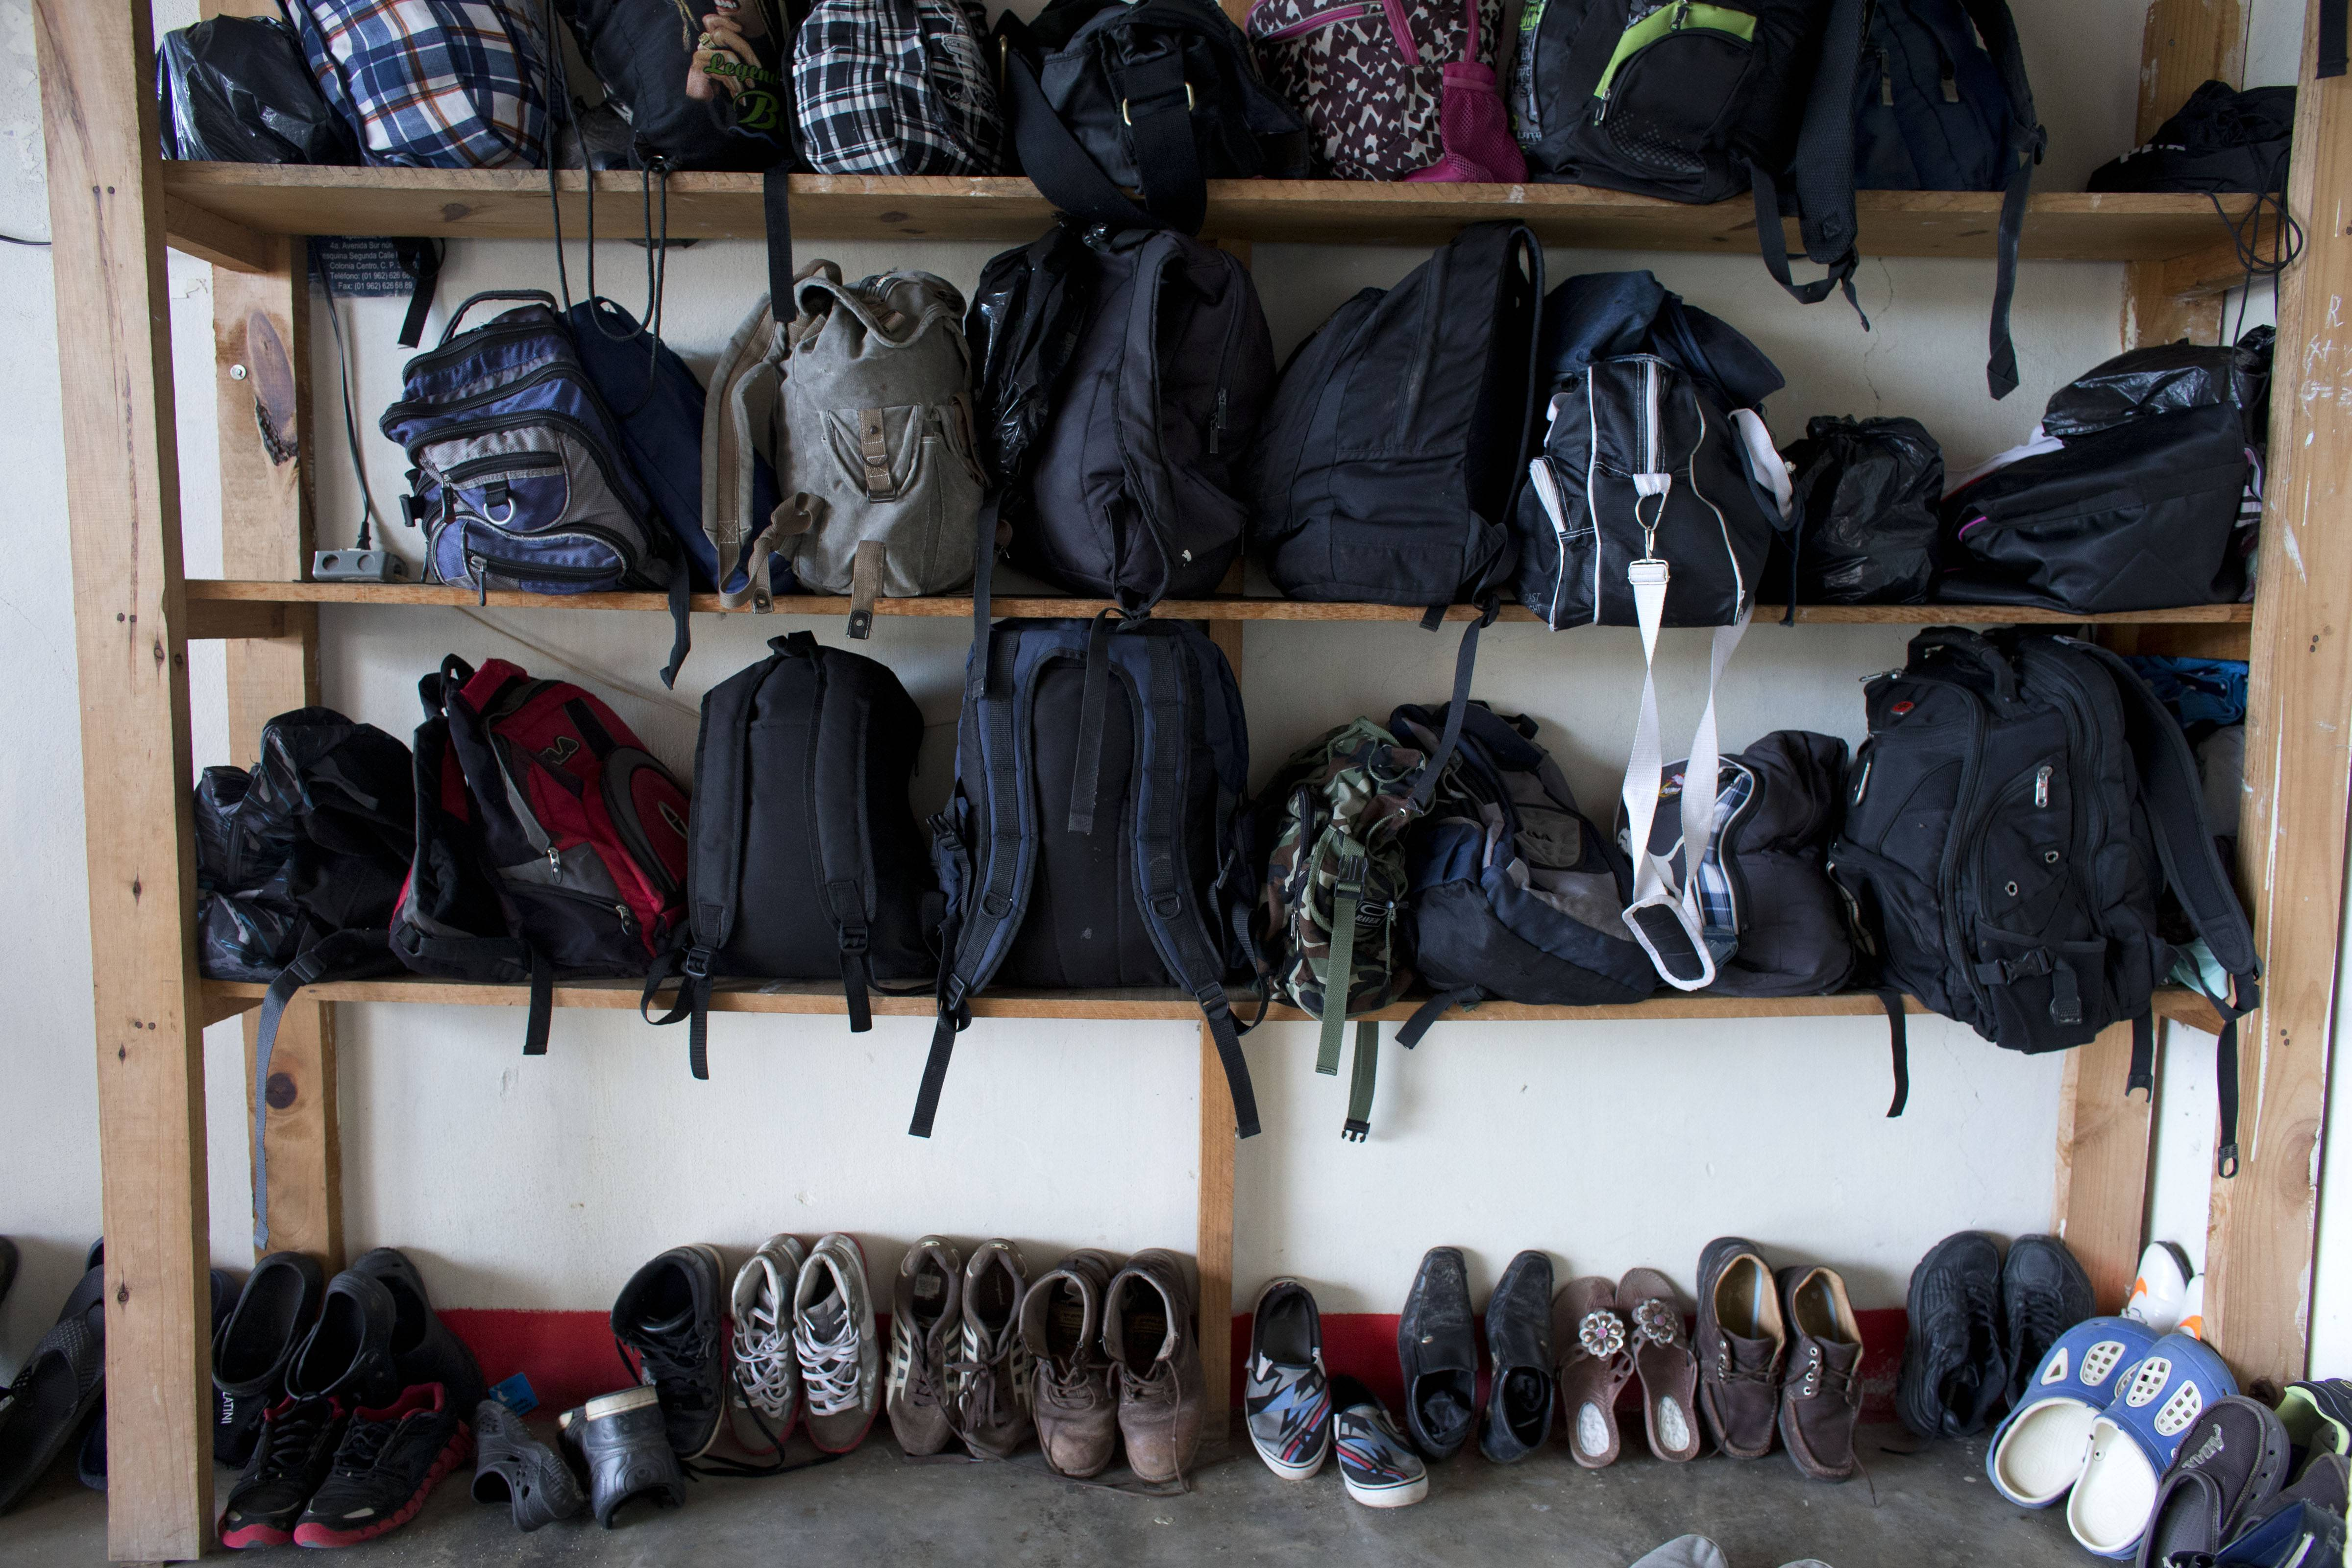 Migrants' bags and shoes line the edge of the room in the men's section of a shelter providing temporary refuge to Central Americans traveling north toward the U.S., in Arriaga, Chiapas State, Mexico. Most migrants travel with little more than a small backpack, permitting them to jump on and off trains more easily, and the best walking shoes they can afford.